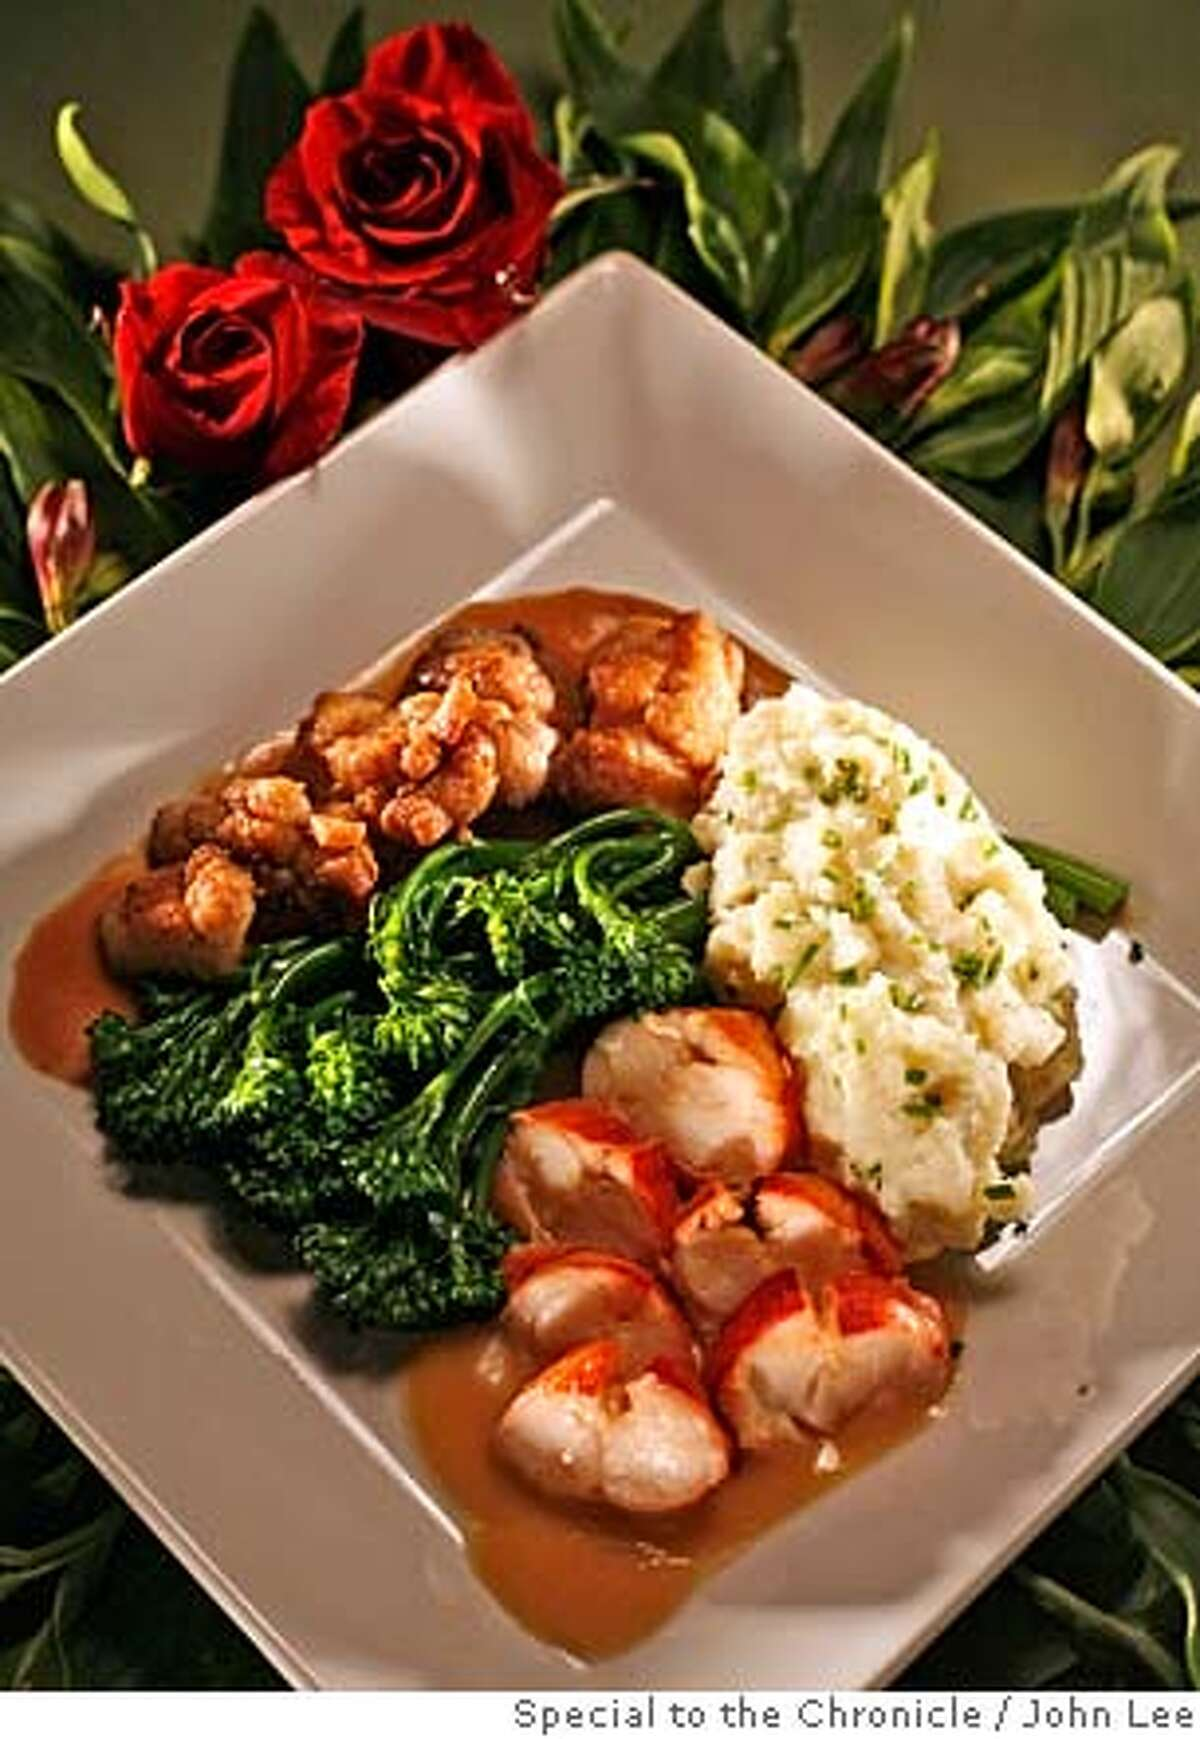 PAIRINGS01_02_JOHNLEE.JPG Pairing recipe to go with Brut Rose sparkling wine for Valentine's Day. Lobster and lemon sauce with sweetbreads and demi-glace with mashed potatoes and broccoli. By JOHN LEE/SPECIAL TO THE CHRONICLE